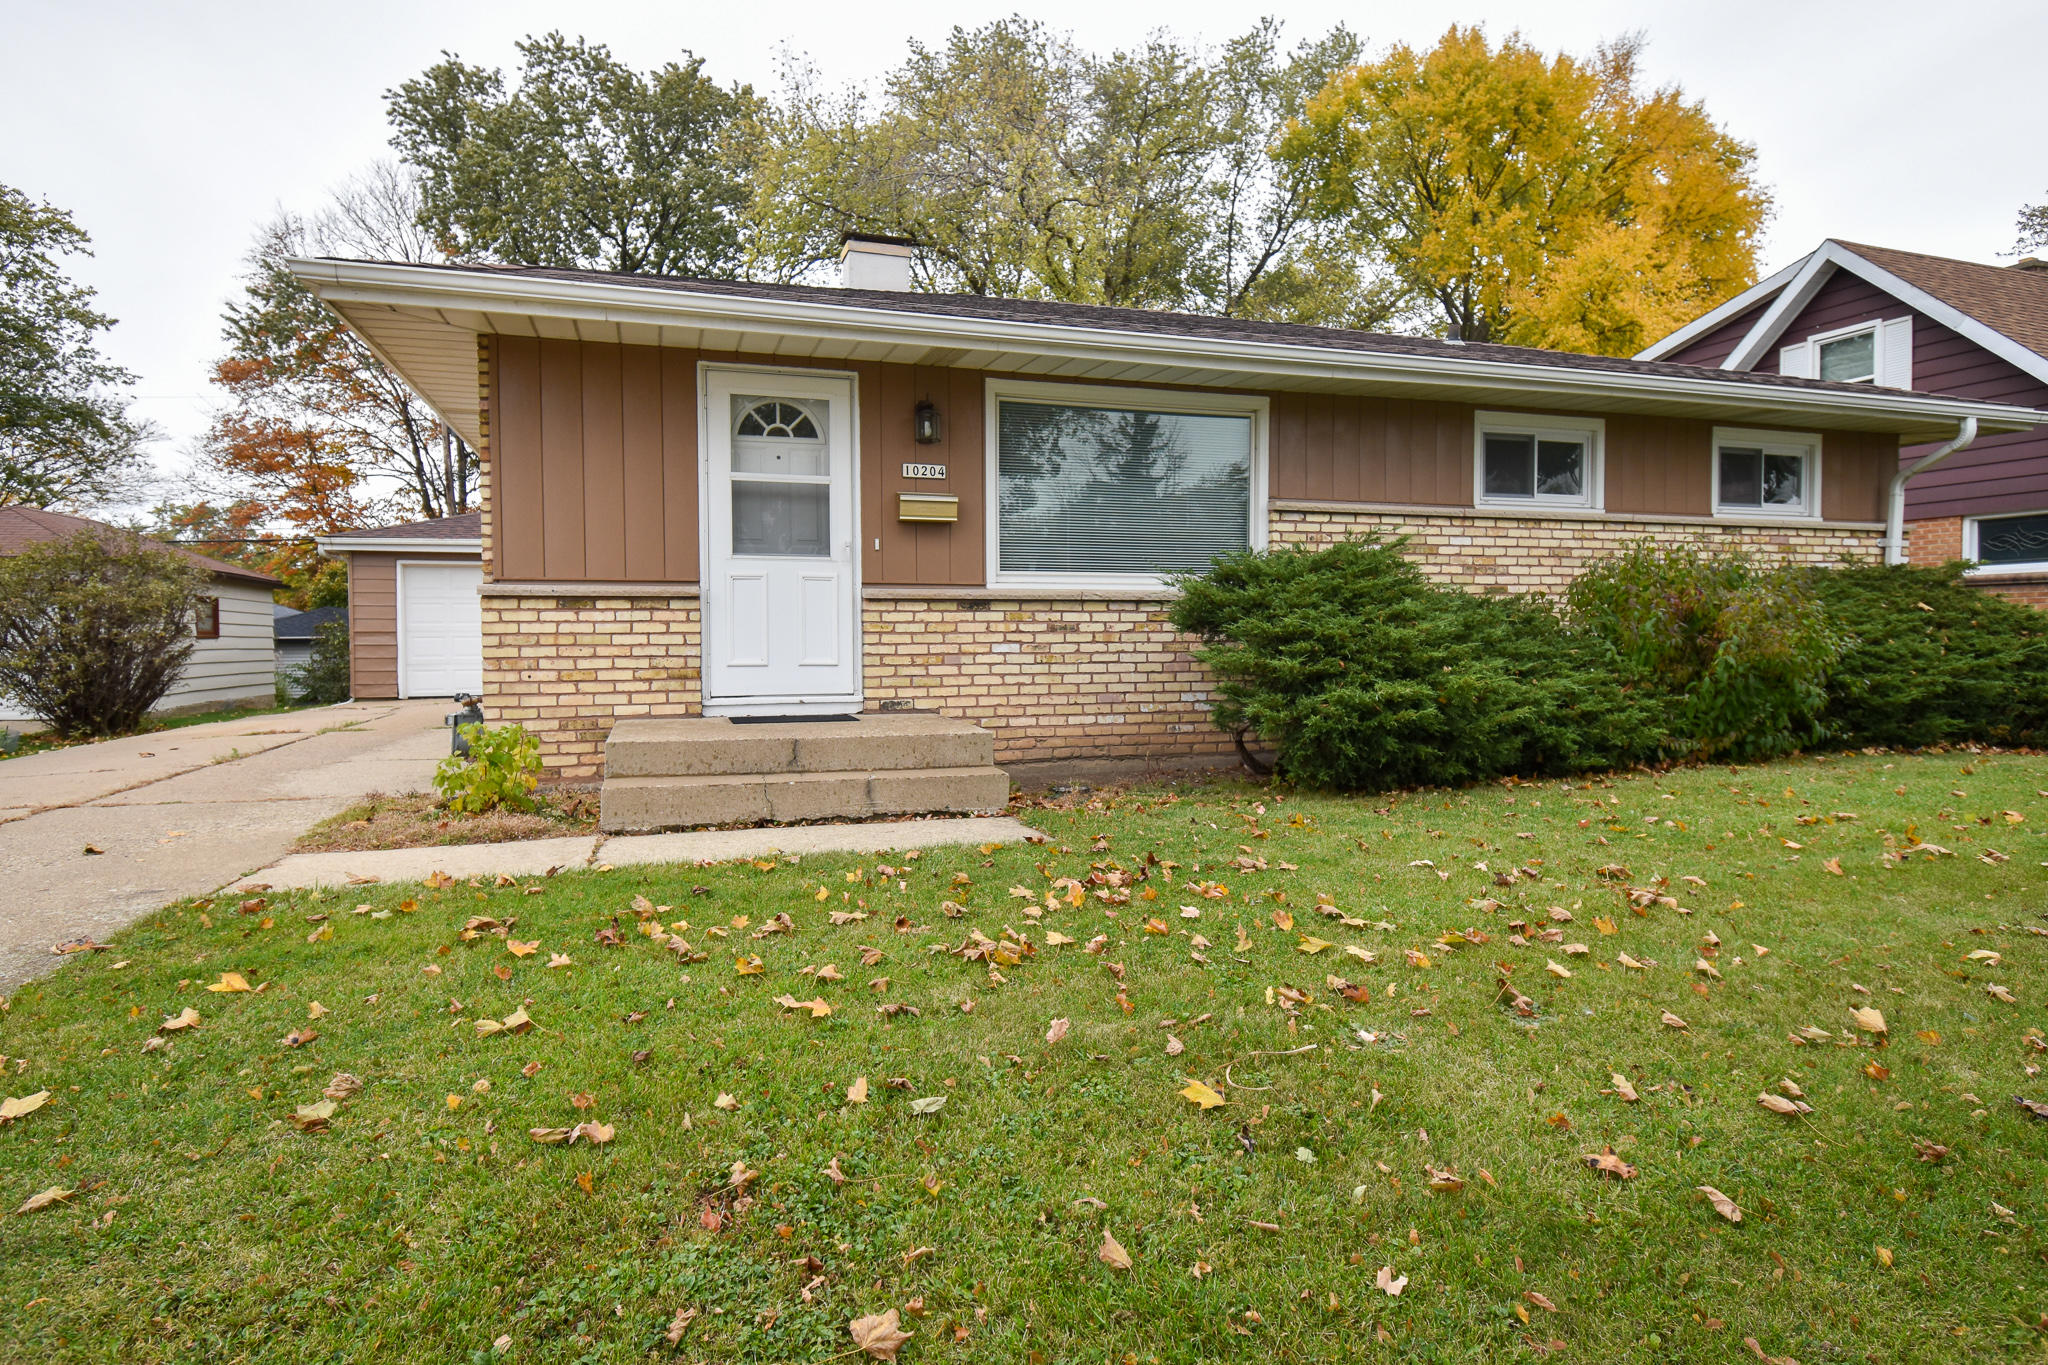 10204 Oklahoma Ave, West Allis, Wisconsin 53227, 3 Bedrooms Bedrooms, ,2 BathroomsBathrooms,Single-Family,For Sale,Oklahoma Ave,1715567